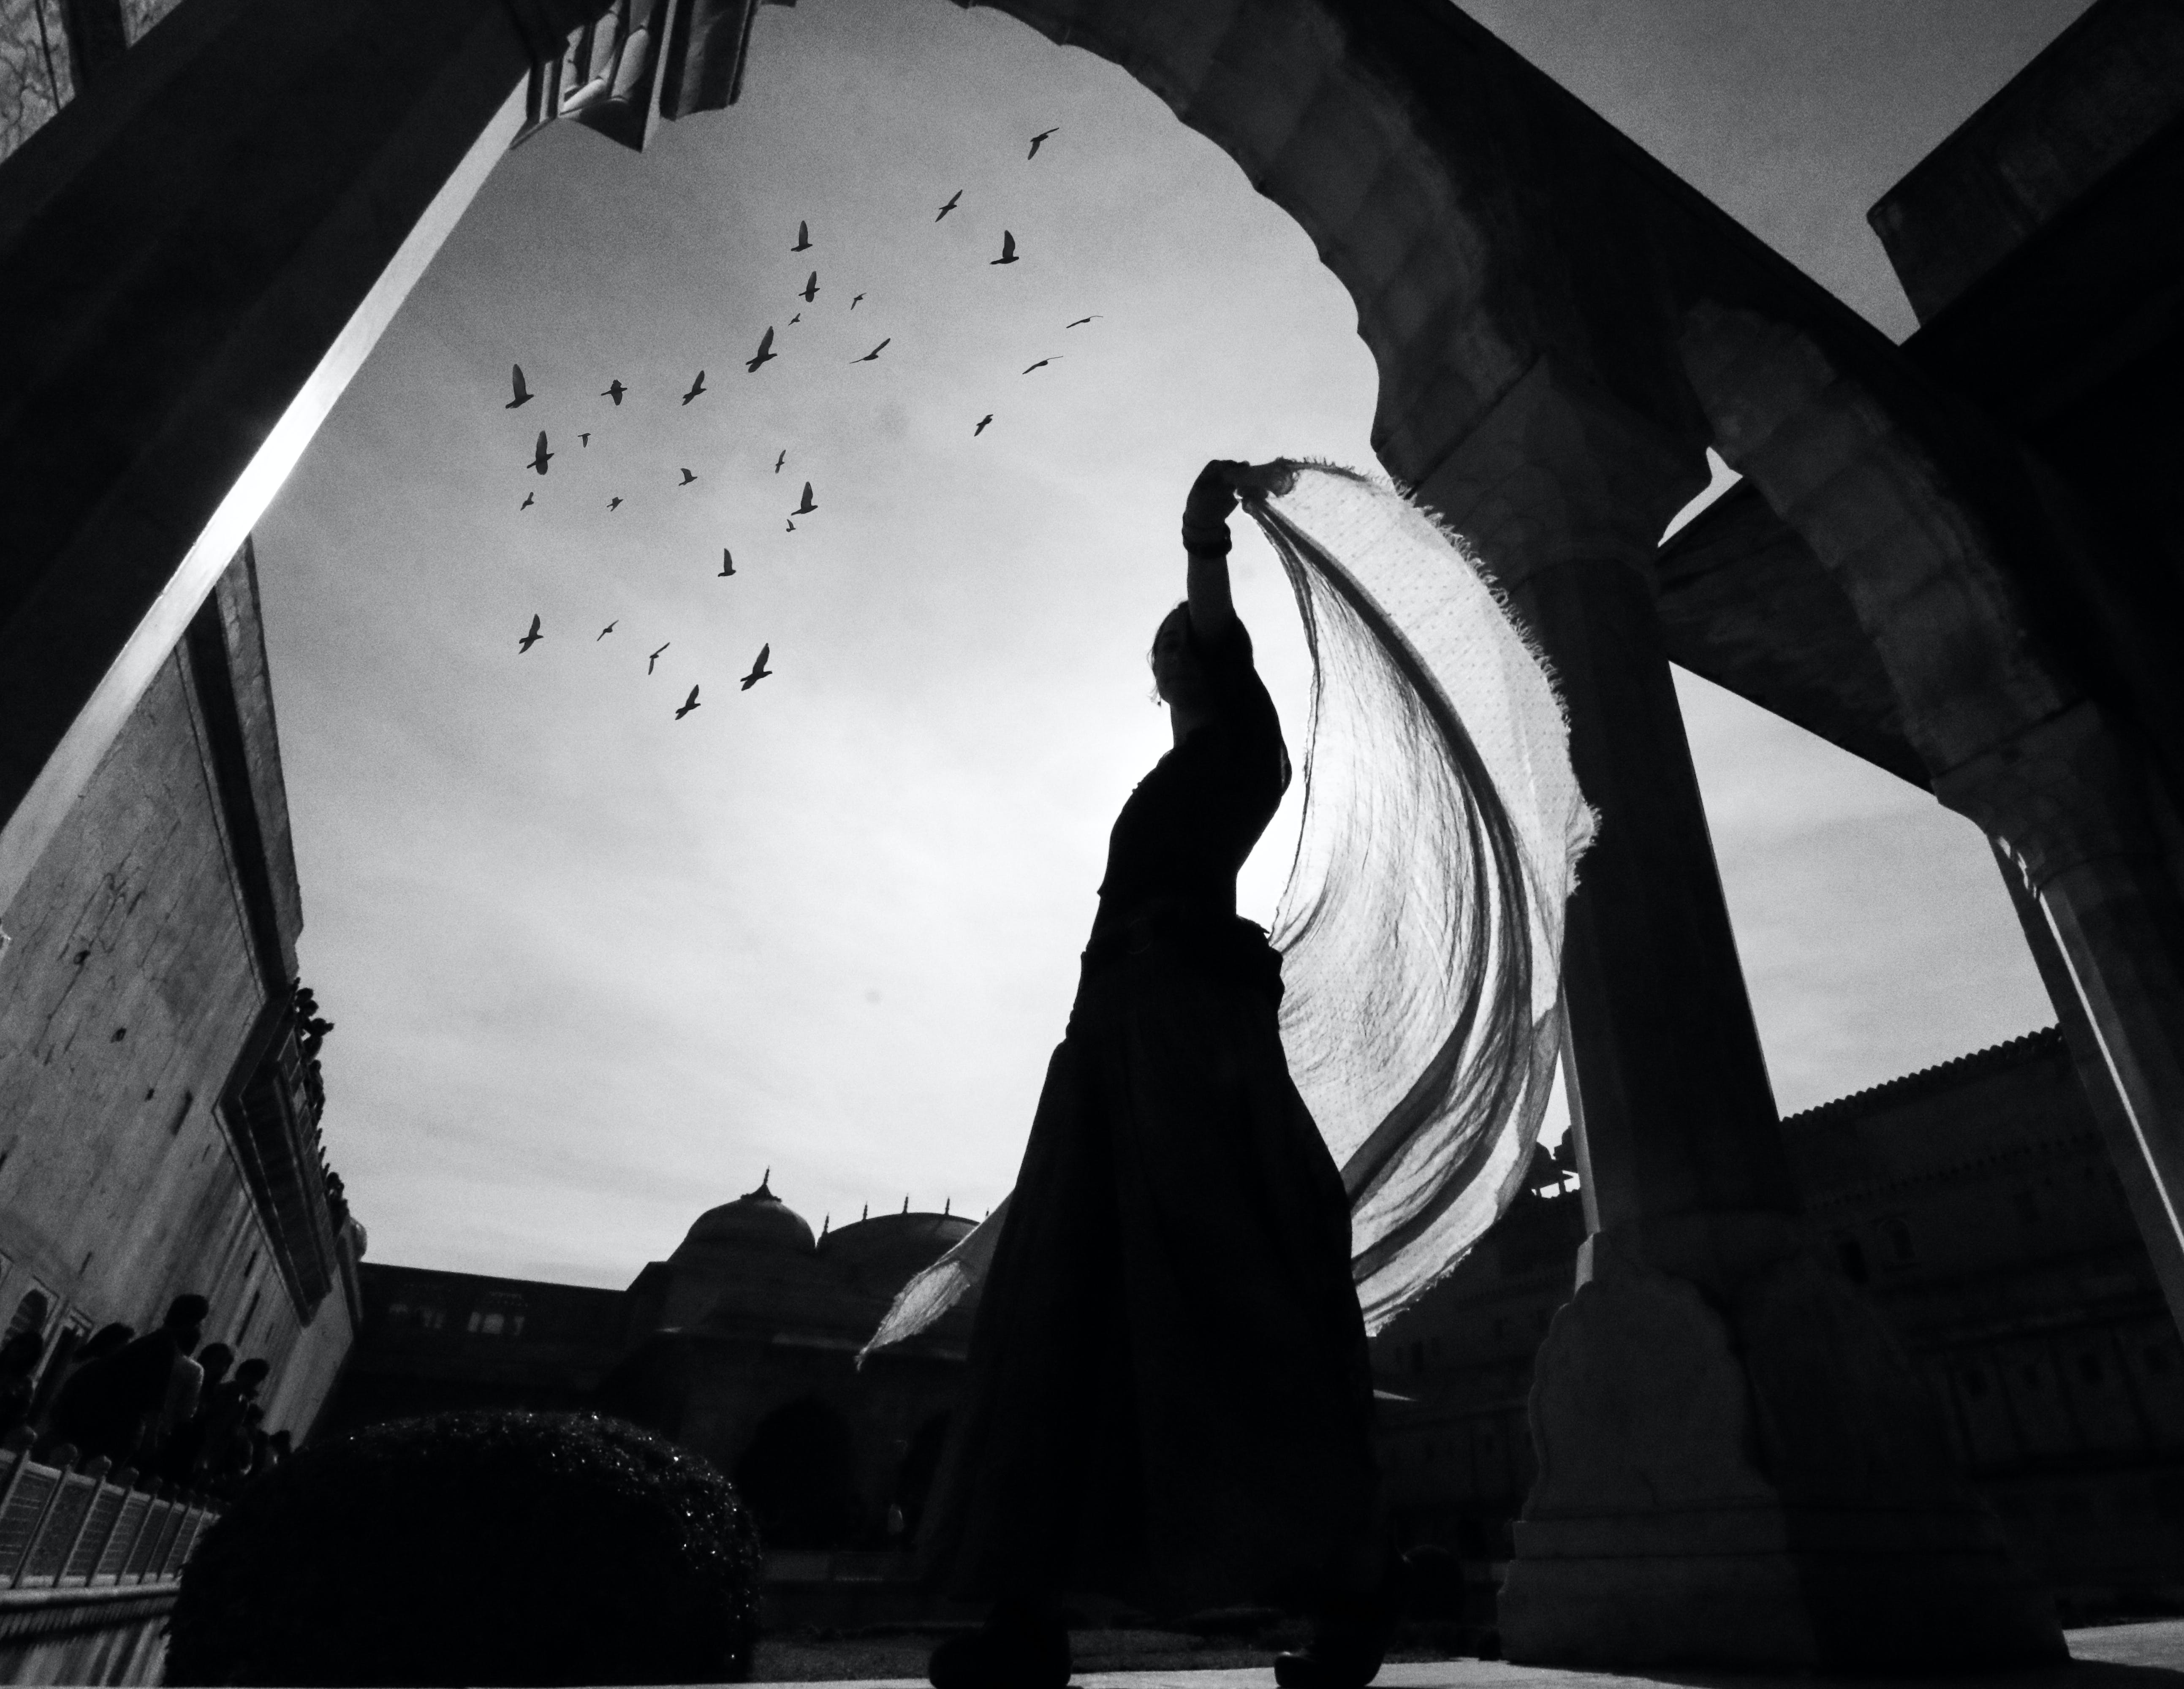 Low Angle View of Silhouette of Woman Standing Near Building